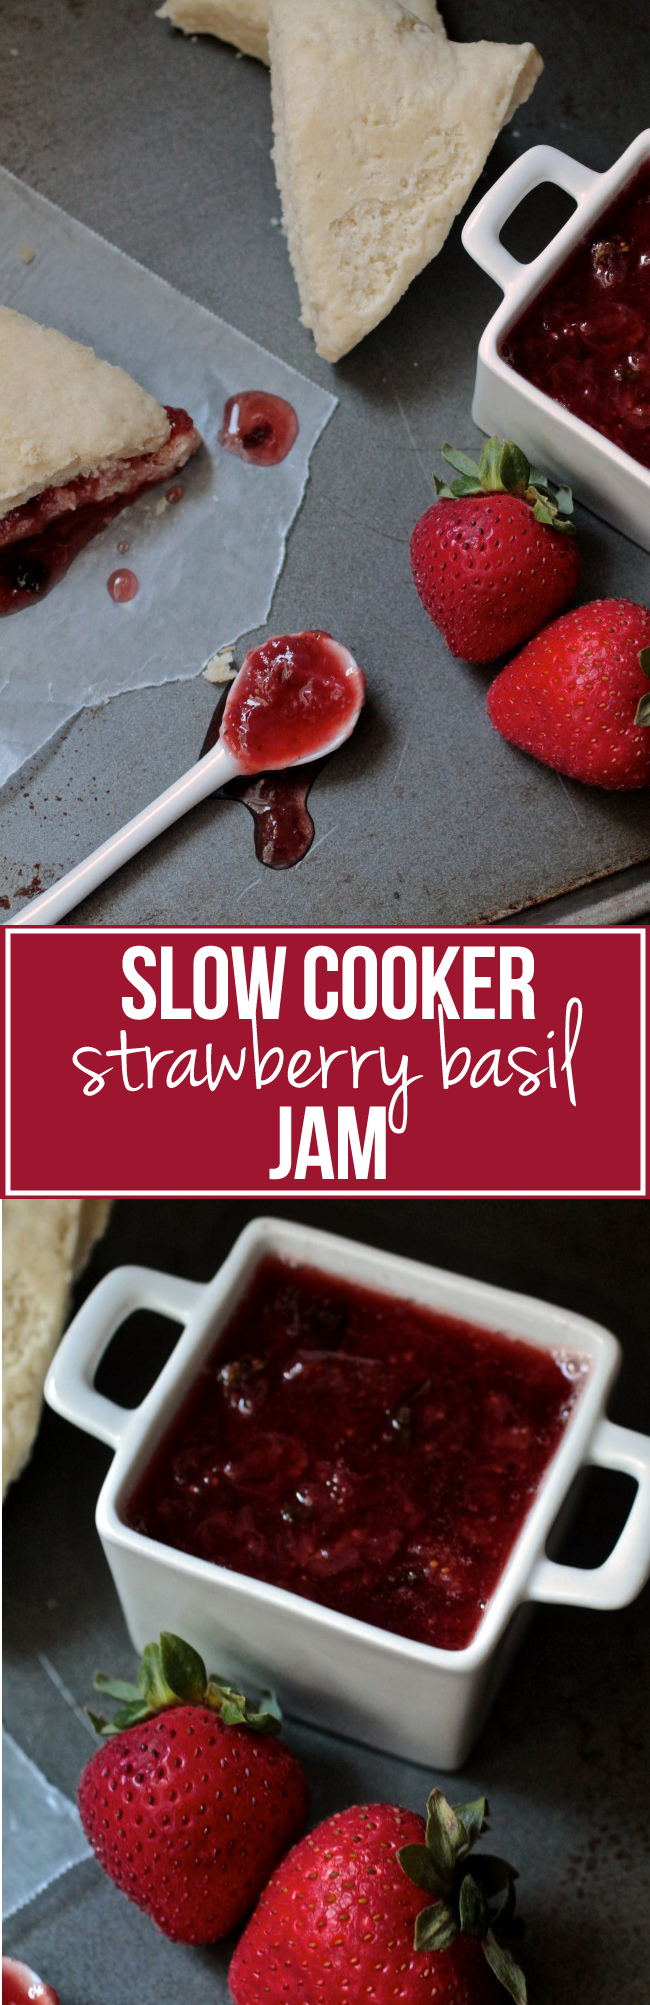 Slow Cooker Strawberry Basil Jam | This easy homemade jam is made in a slow cooker with fresh strawberries and fresh basil for a bit of earthiness. Use it on anything from bagels to fish and chicken to dessert!